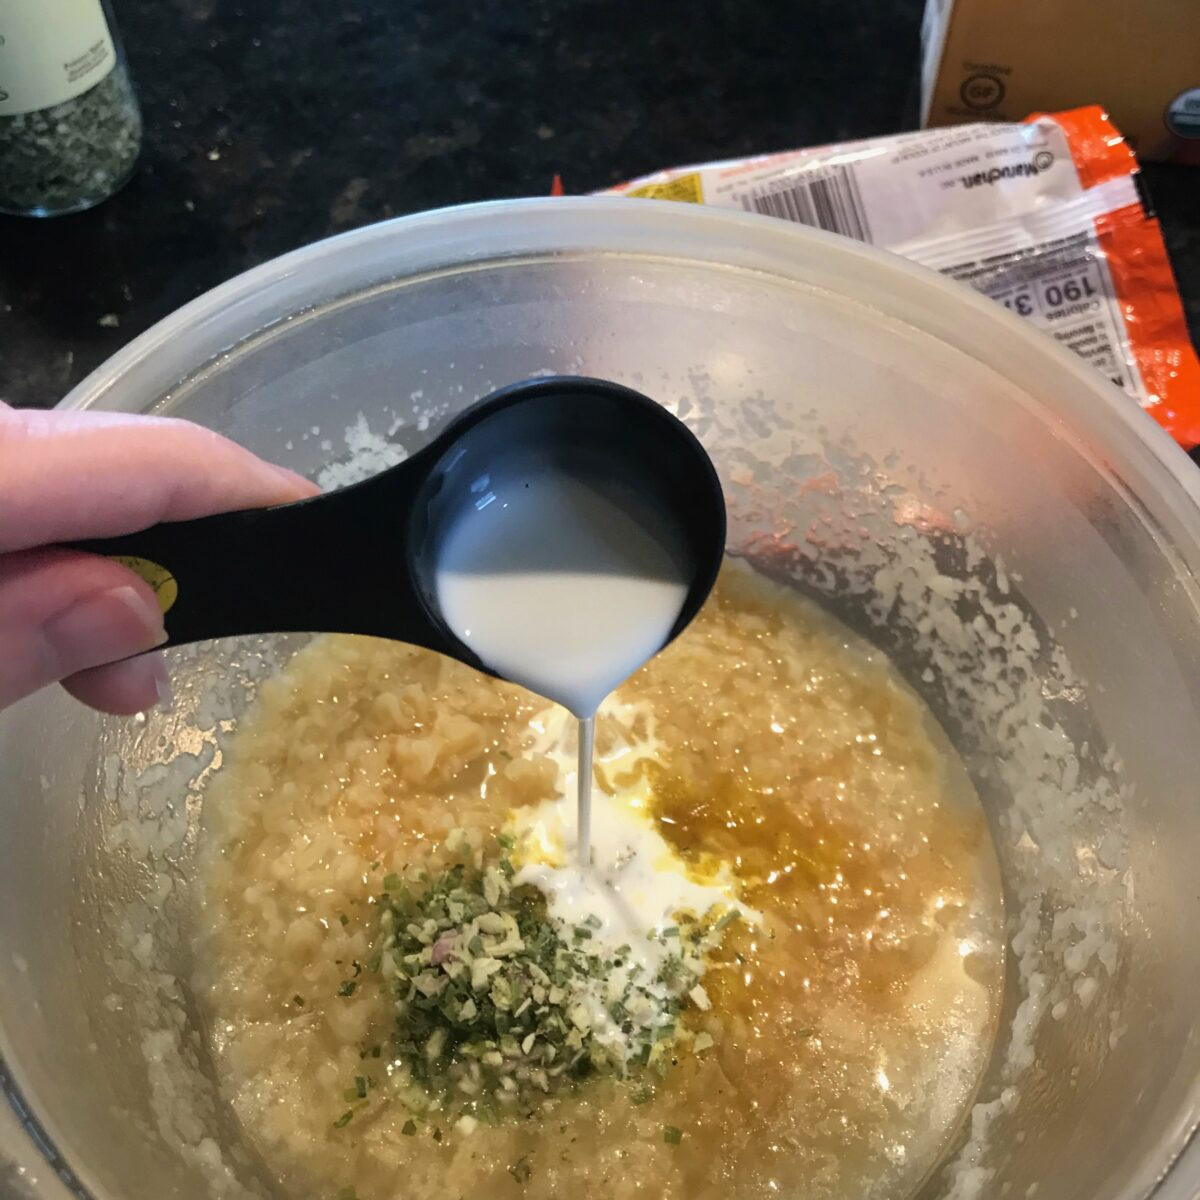 Top view showing the addition of cream and chicken broth to the cooked ramen noodles.